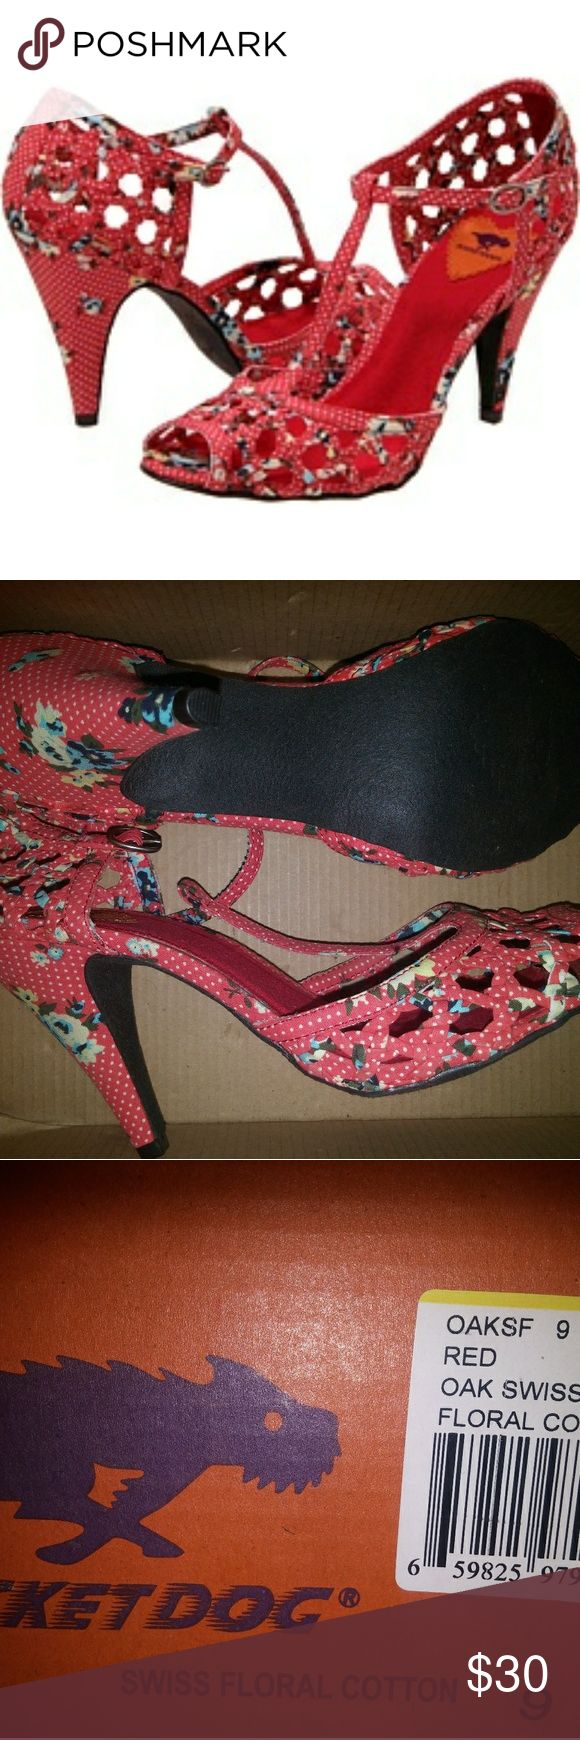 New Rocket Dog floral cotton t-strap heels. Size 9 New with box red floral and dot cotton heels from Rocket Dog. Very very adorable print and t-strap design. Vintage/Pinup style! Size 9. Note because of design of shoe, they may fit an 8.5 best or narrower feet. Rocket Dog Shoes Heels